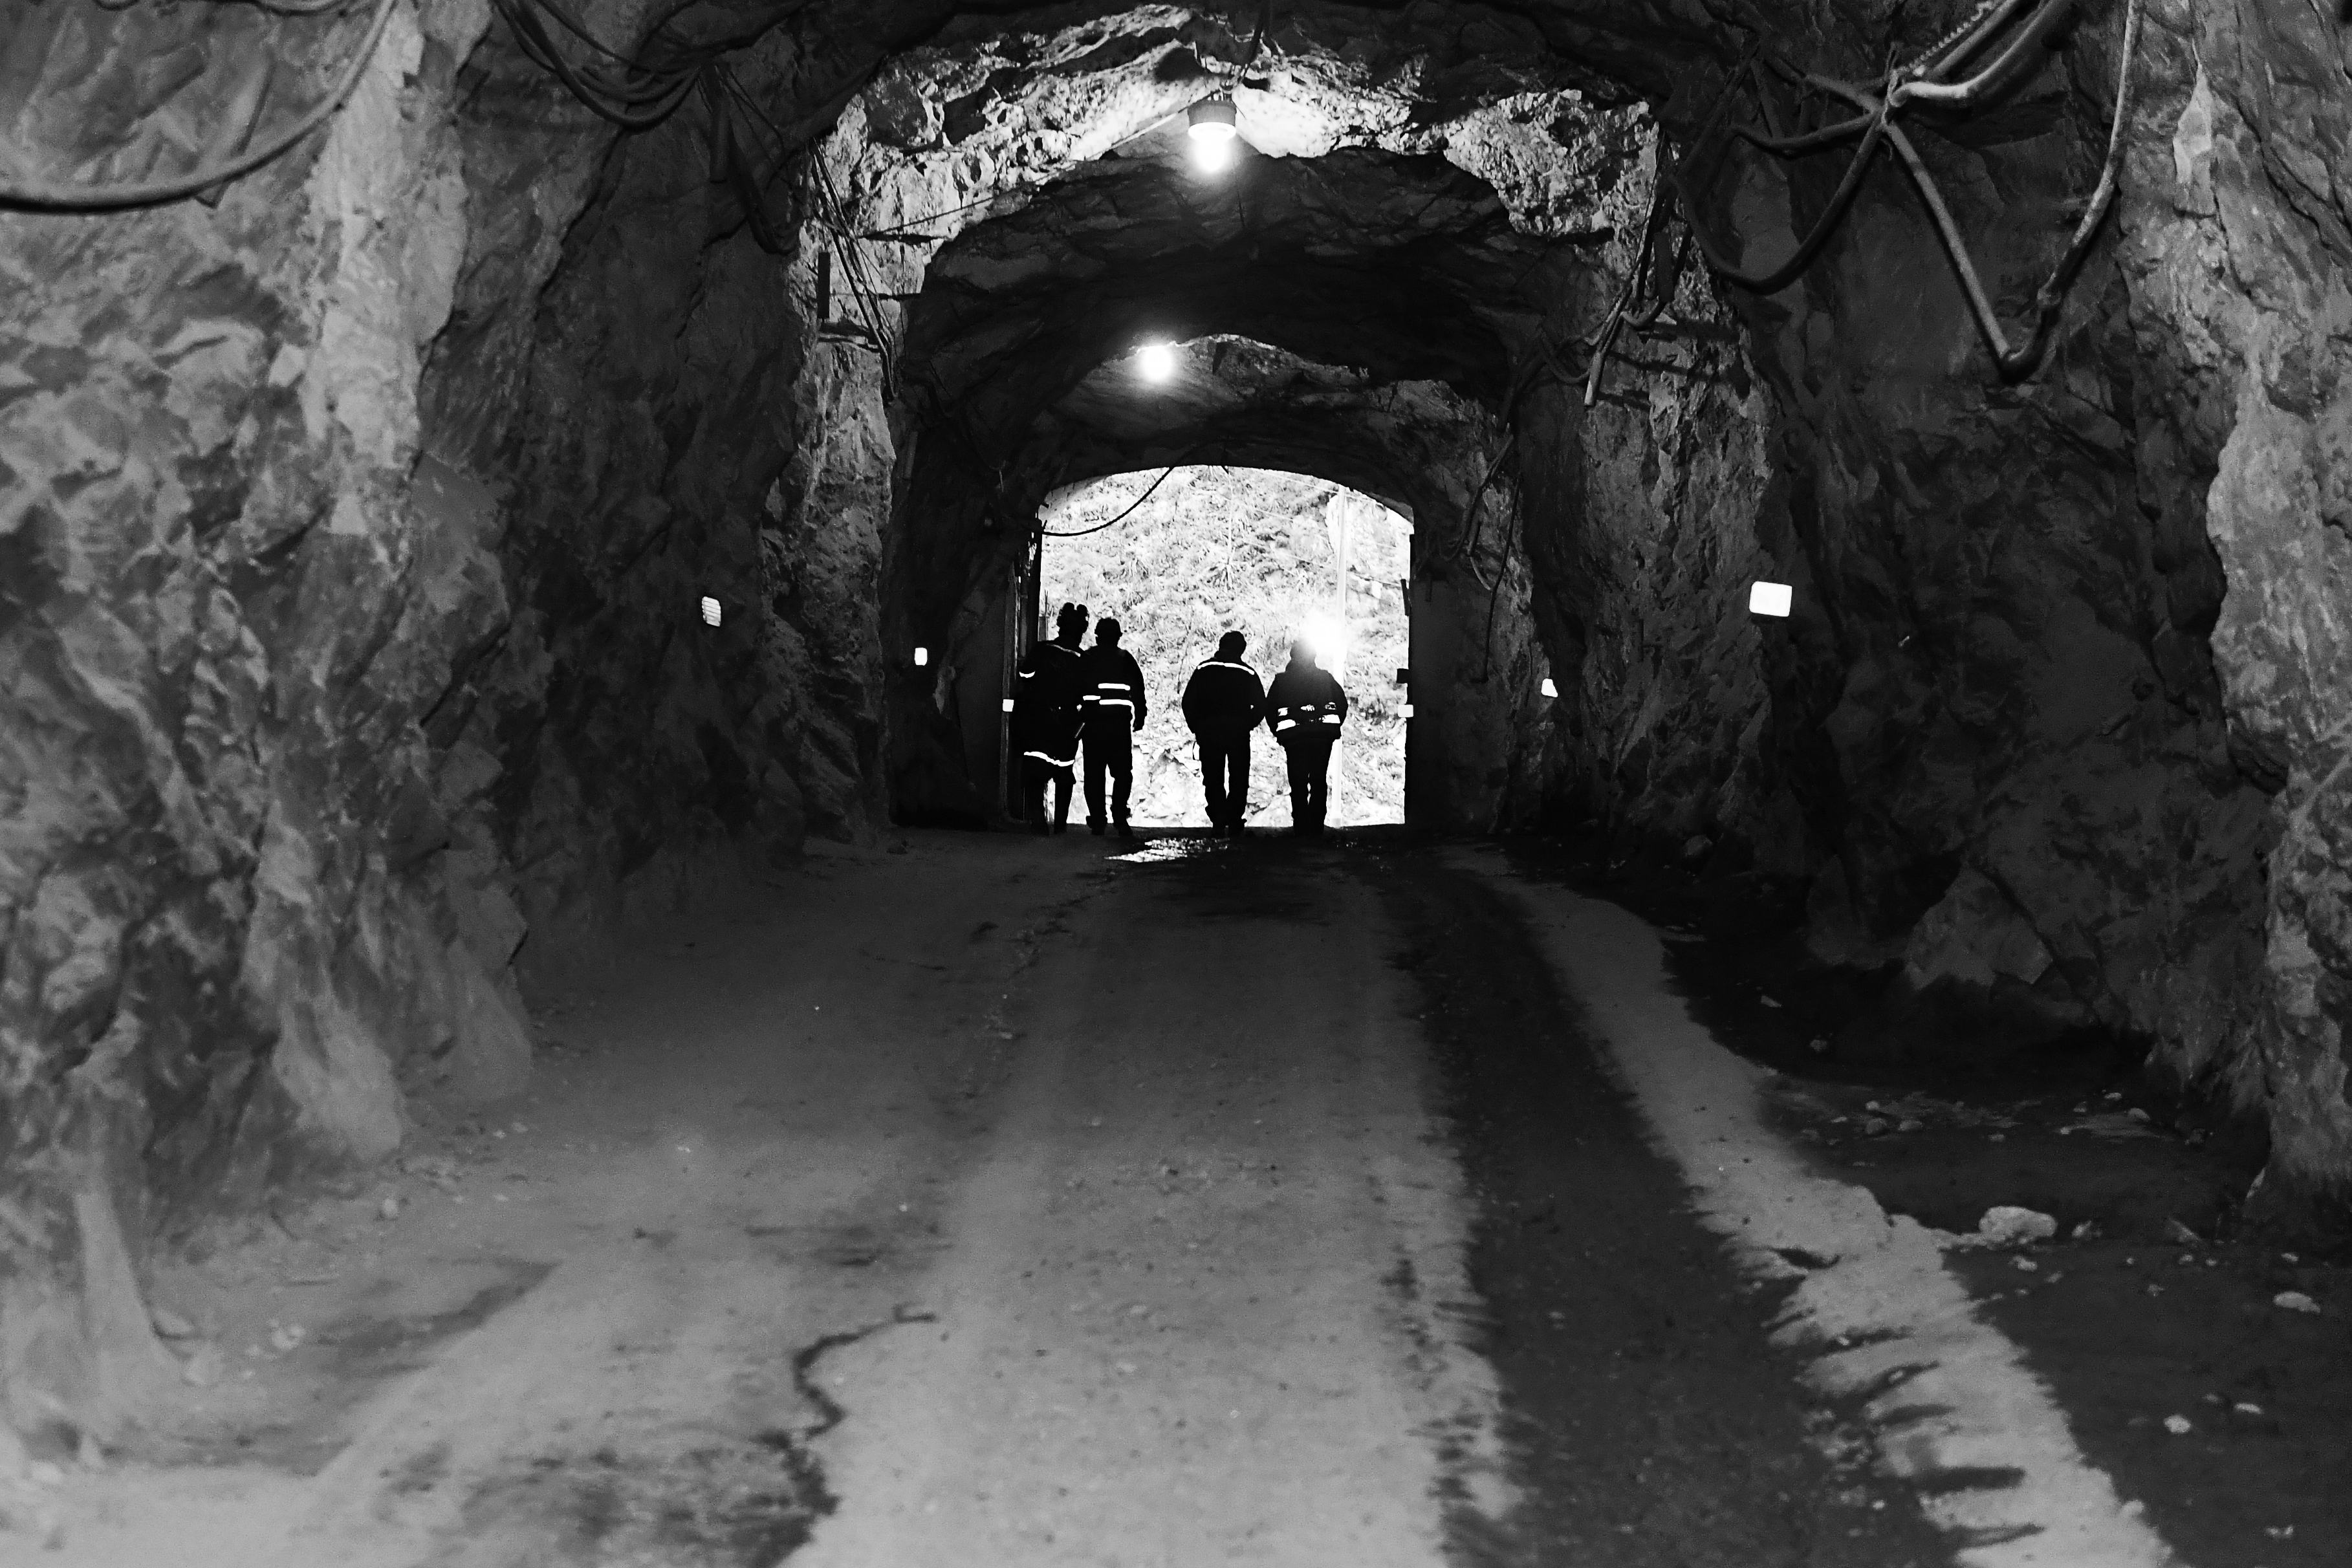 Black and White silhouettes in a mine tunne